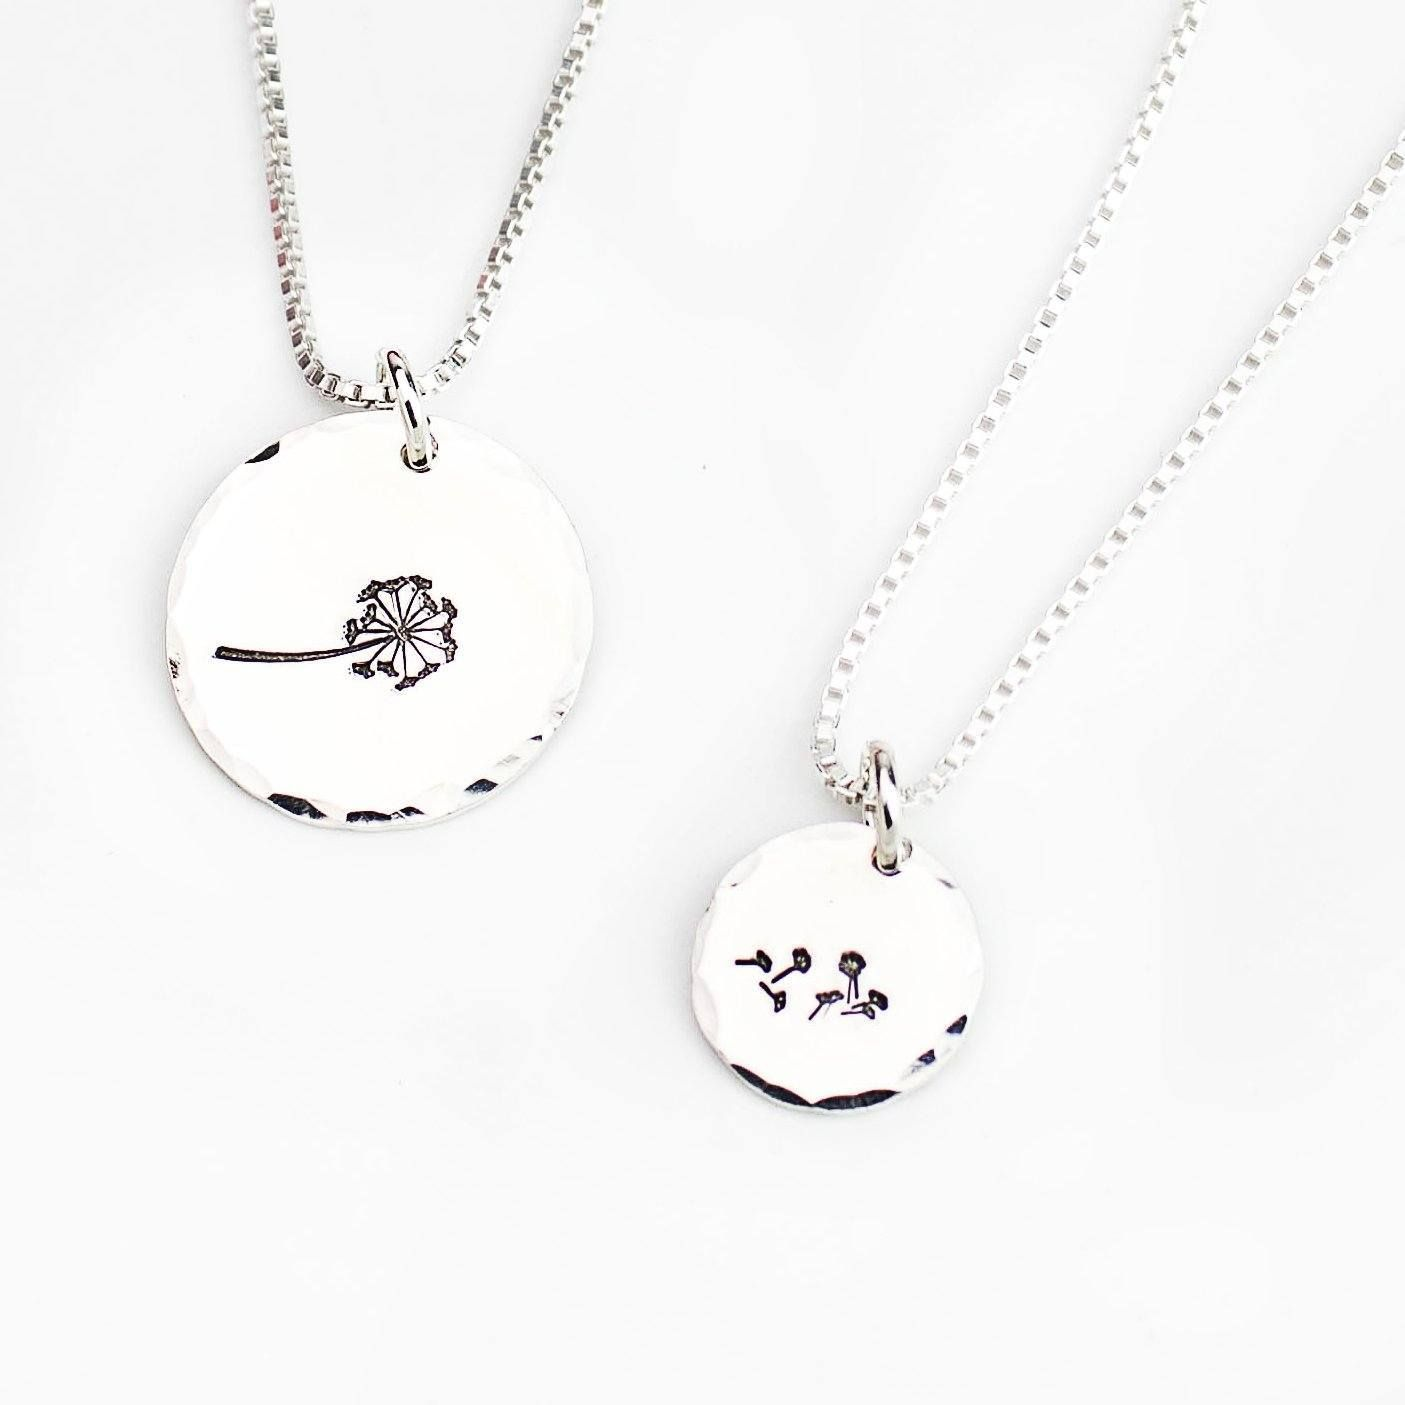 Mother and child necklace sets sterling silver products